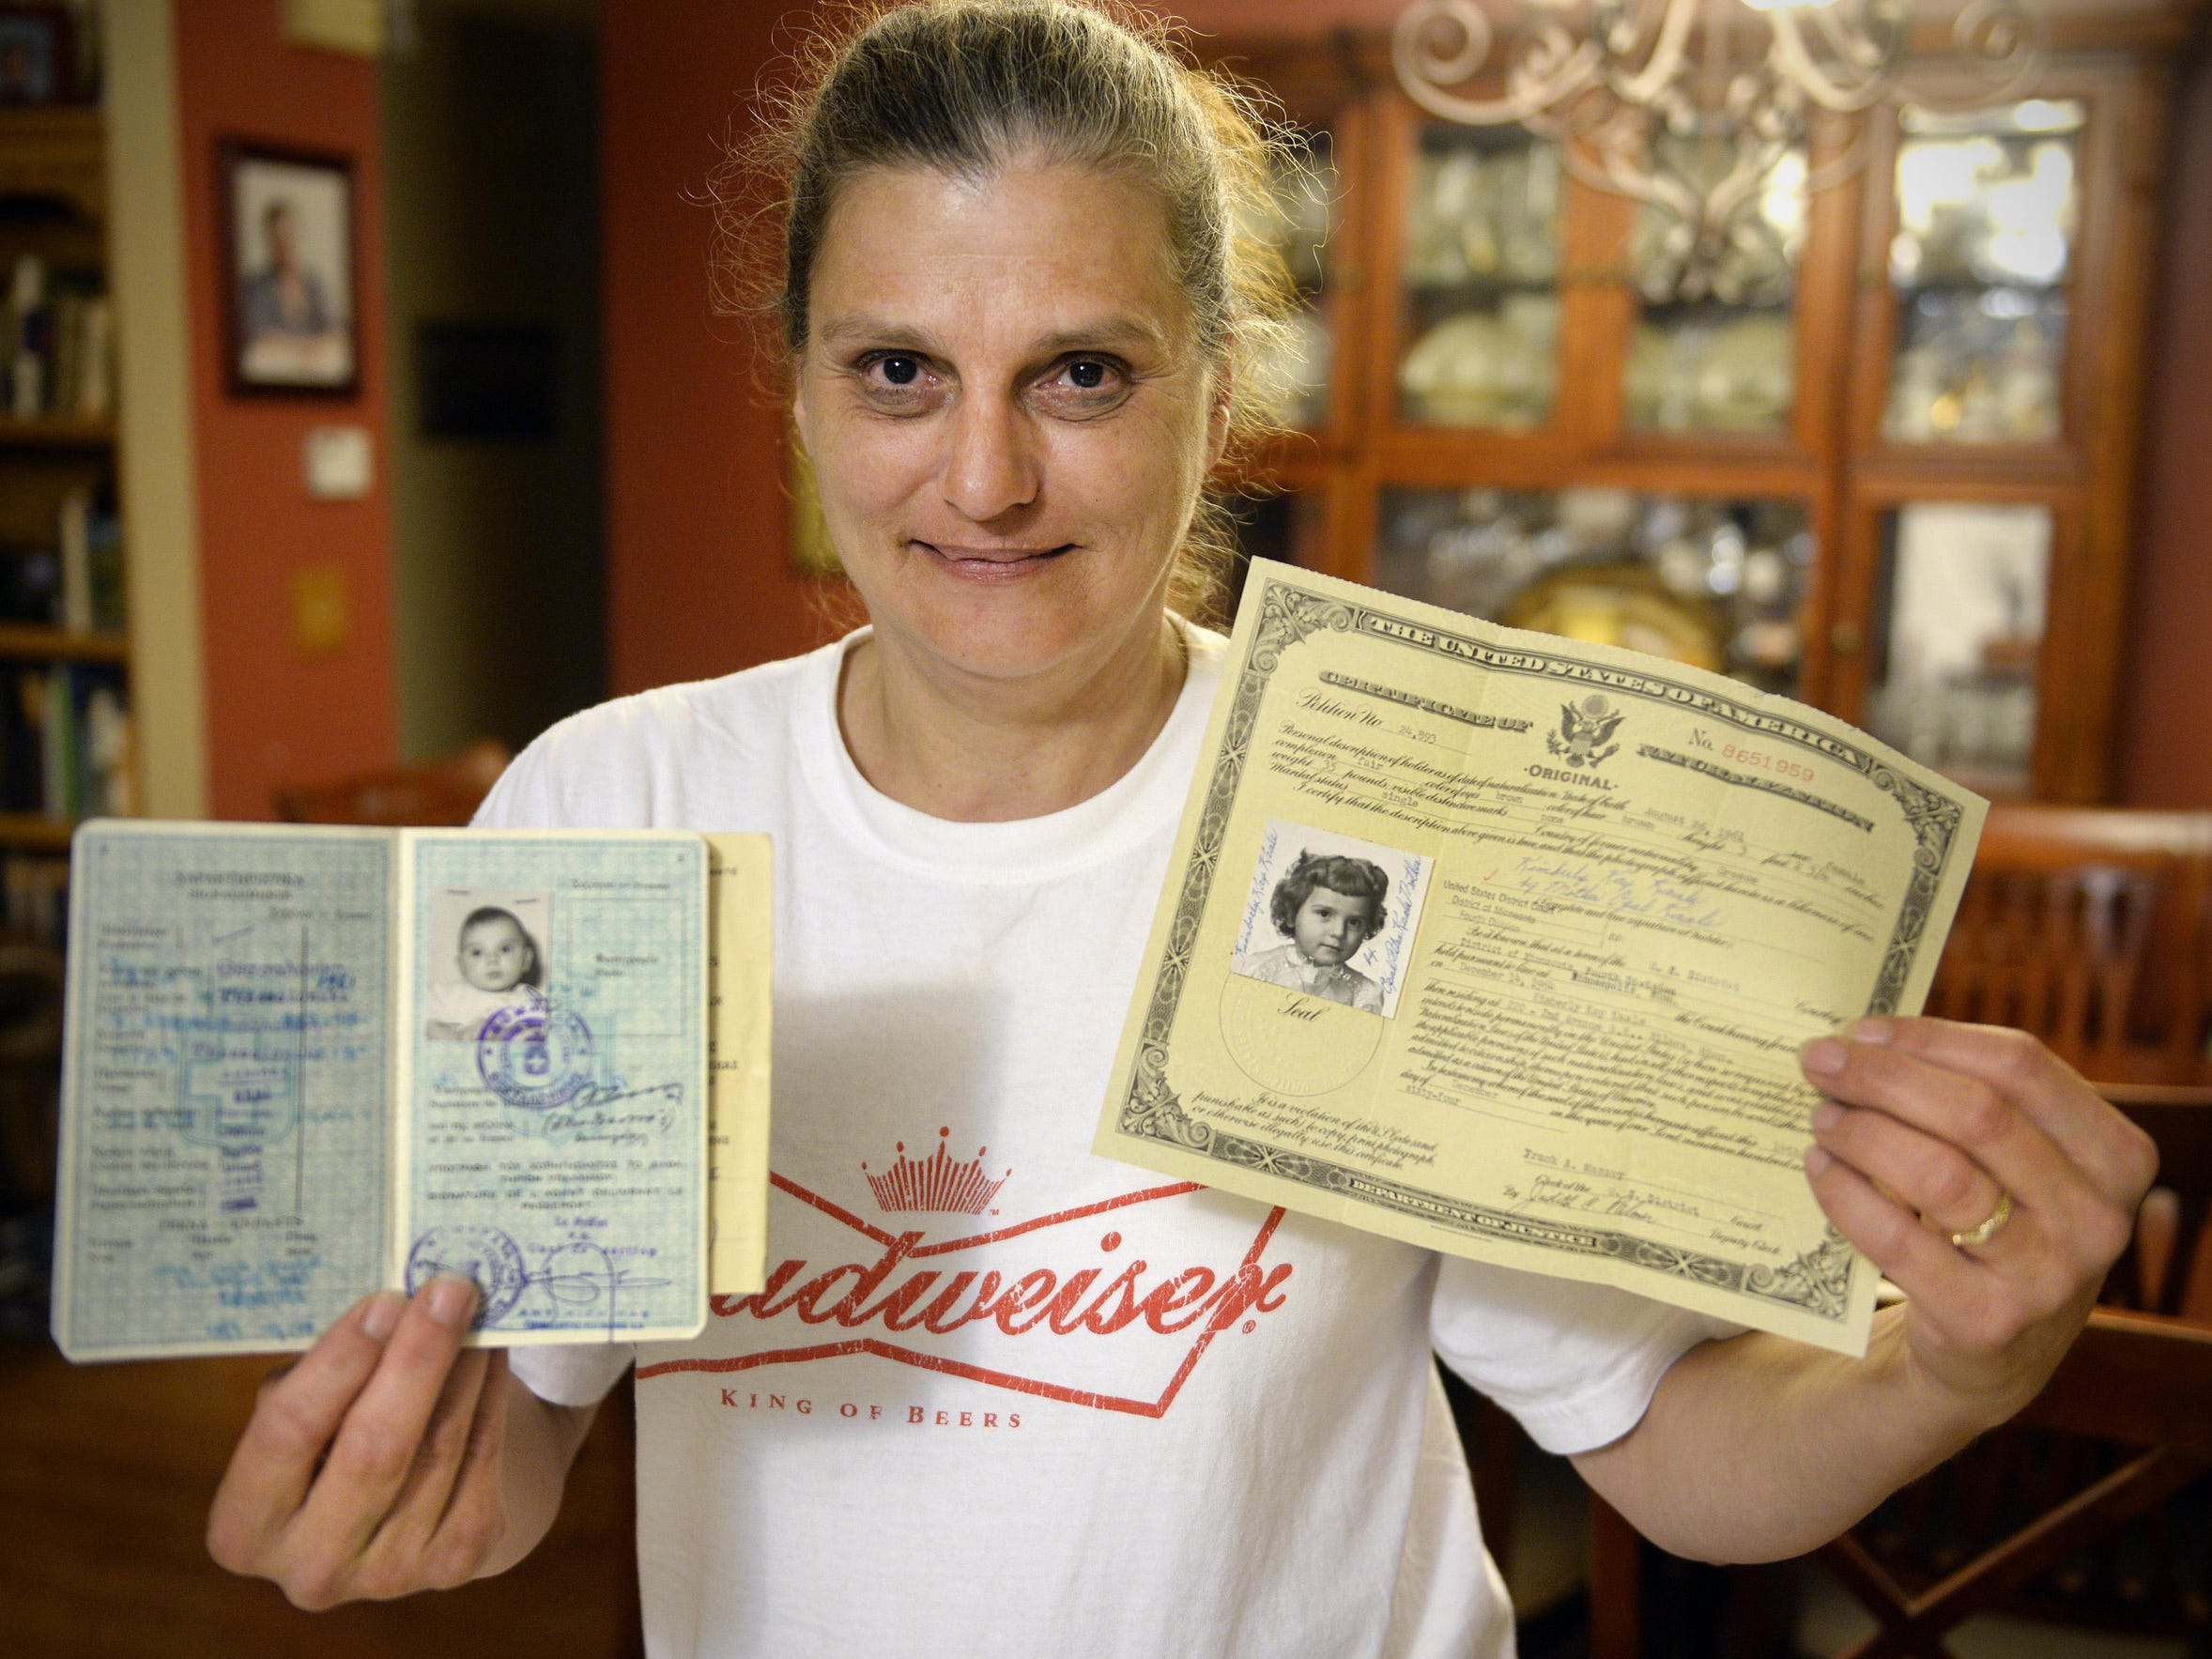 Kim Kruse has the documents adorned with her photo